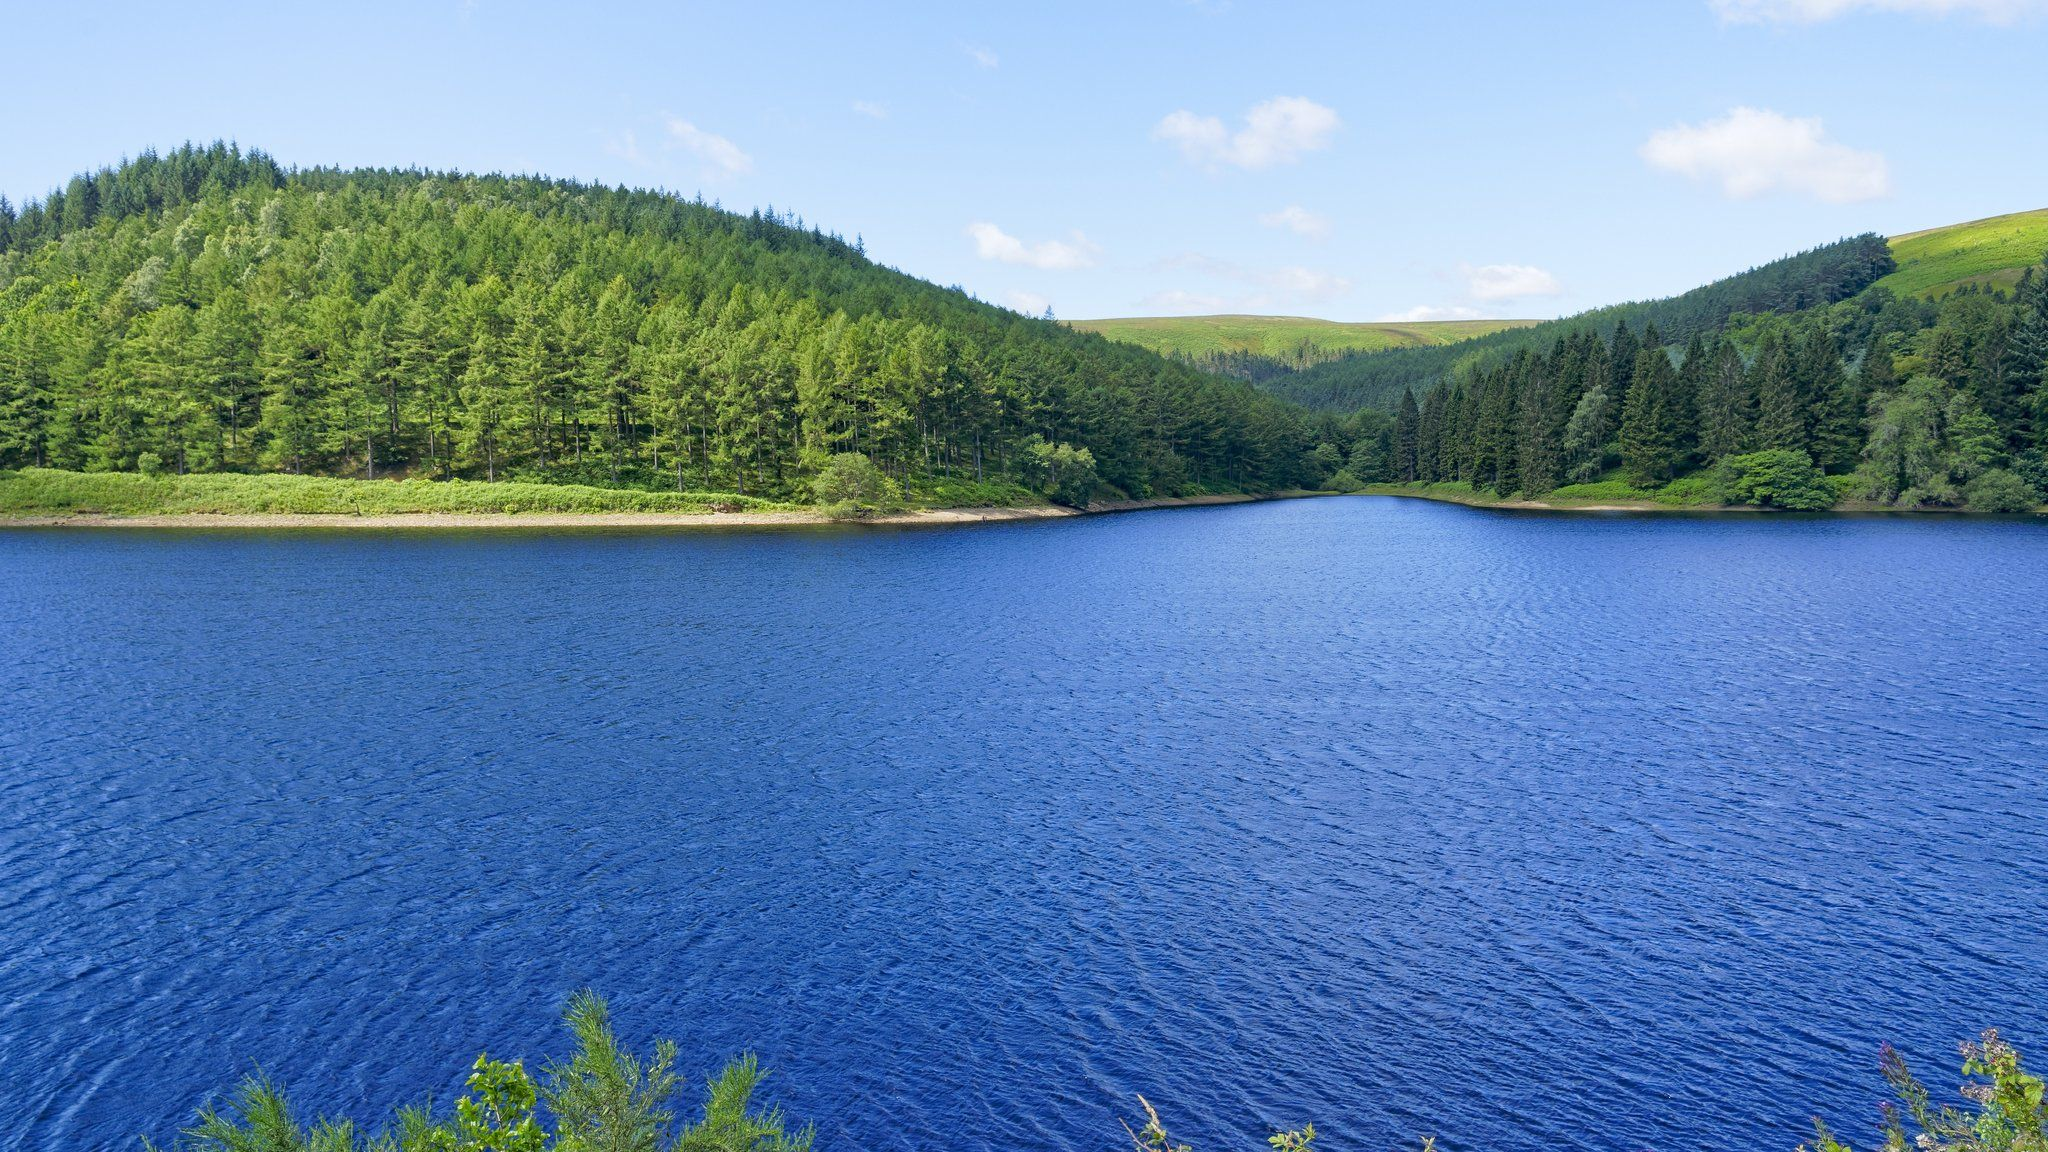 Over the breadth of Derwent Upper Reservoir to the wooded hills of Derbyshire